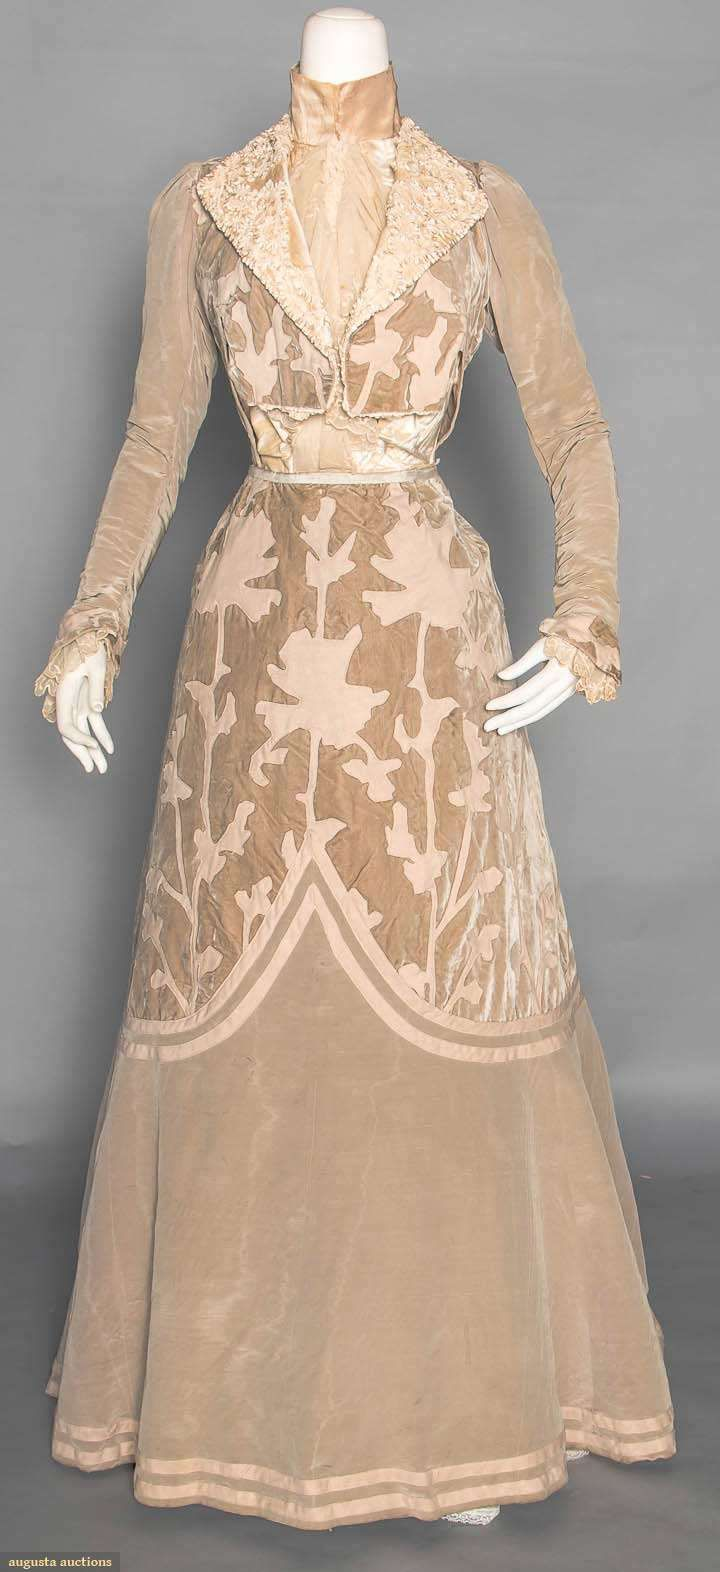 Ephemeral Elegance | Wool Appliqued Velvet Afternoon Dress, ca. 1902...